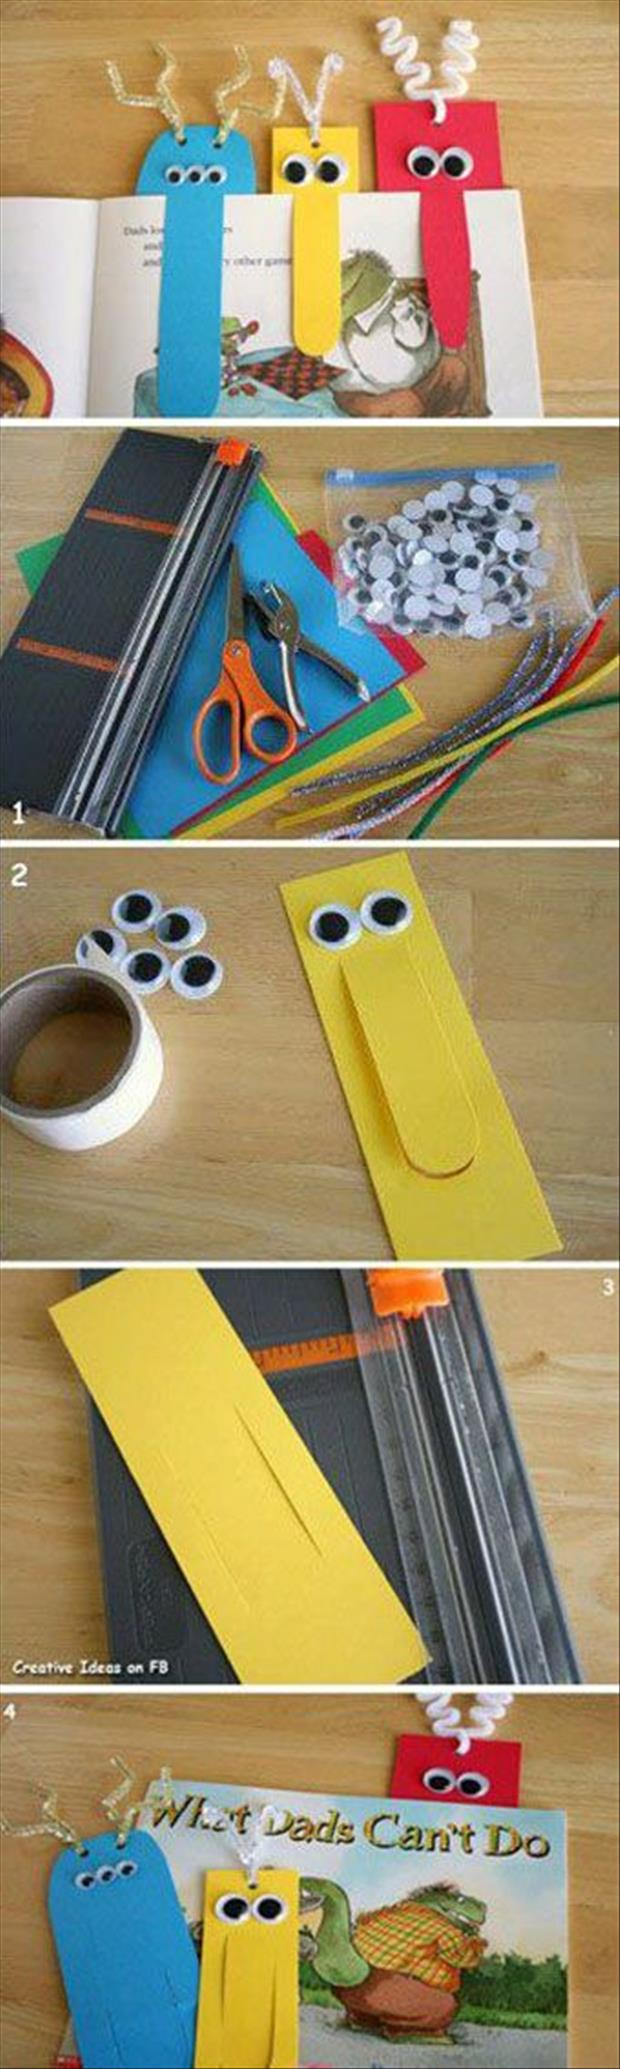 craft ideas (8)